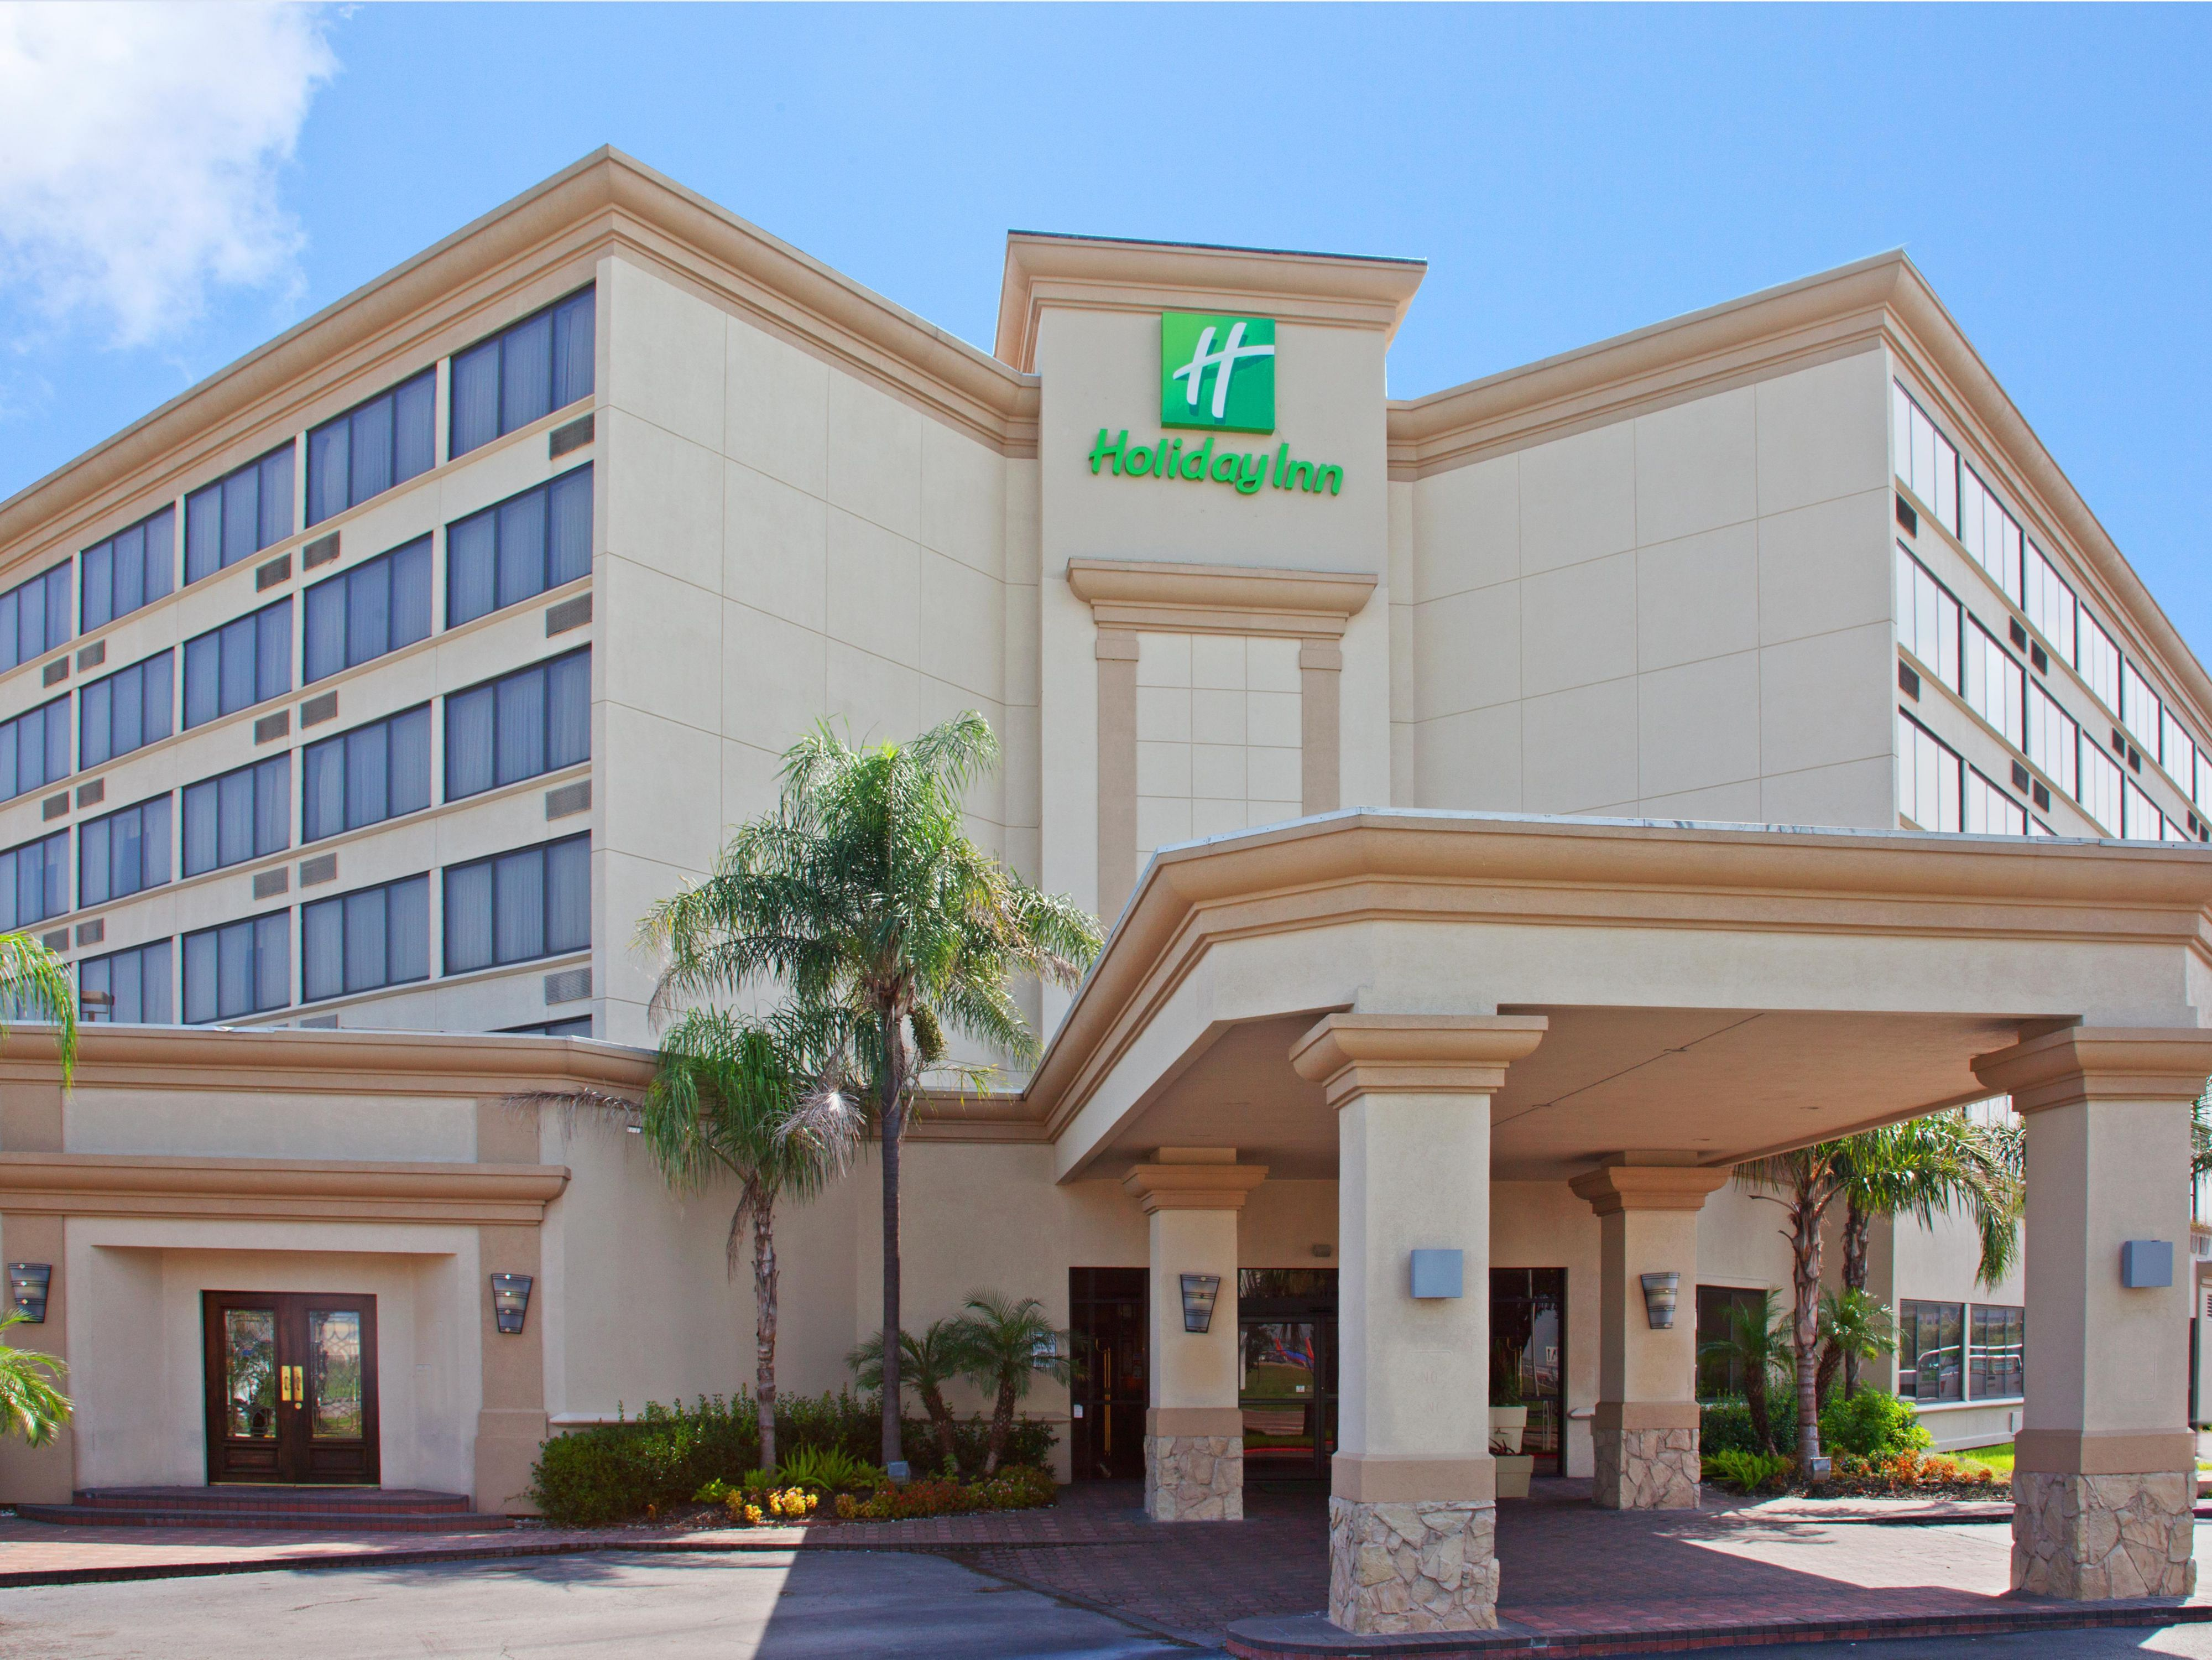 Holiday Inn Houston-Hobby Airport Hotel by IHG